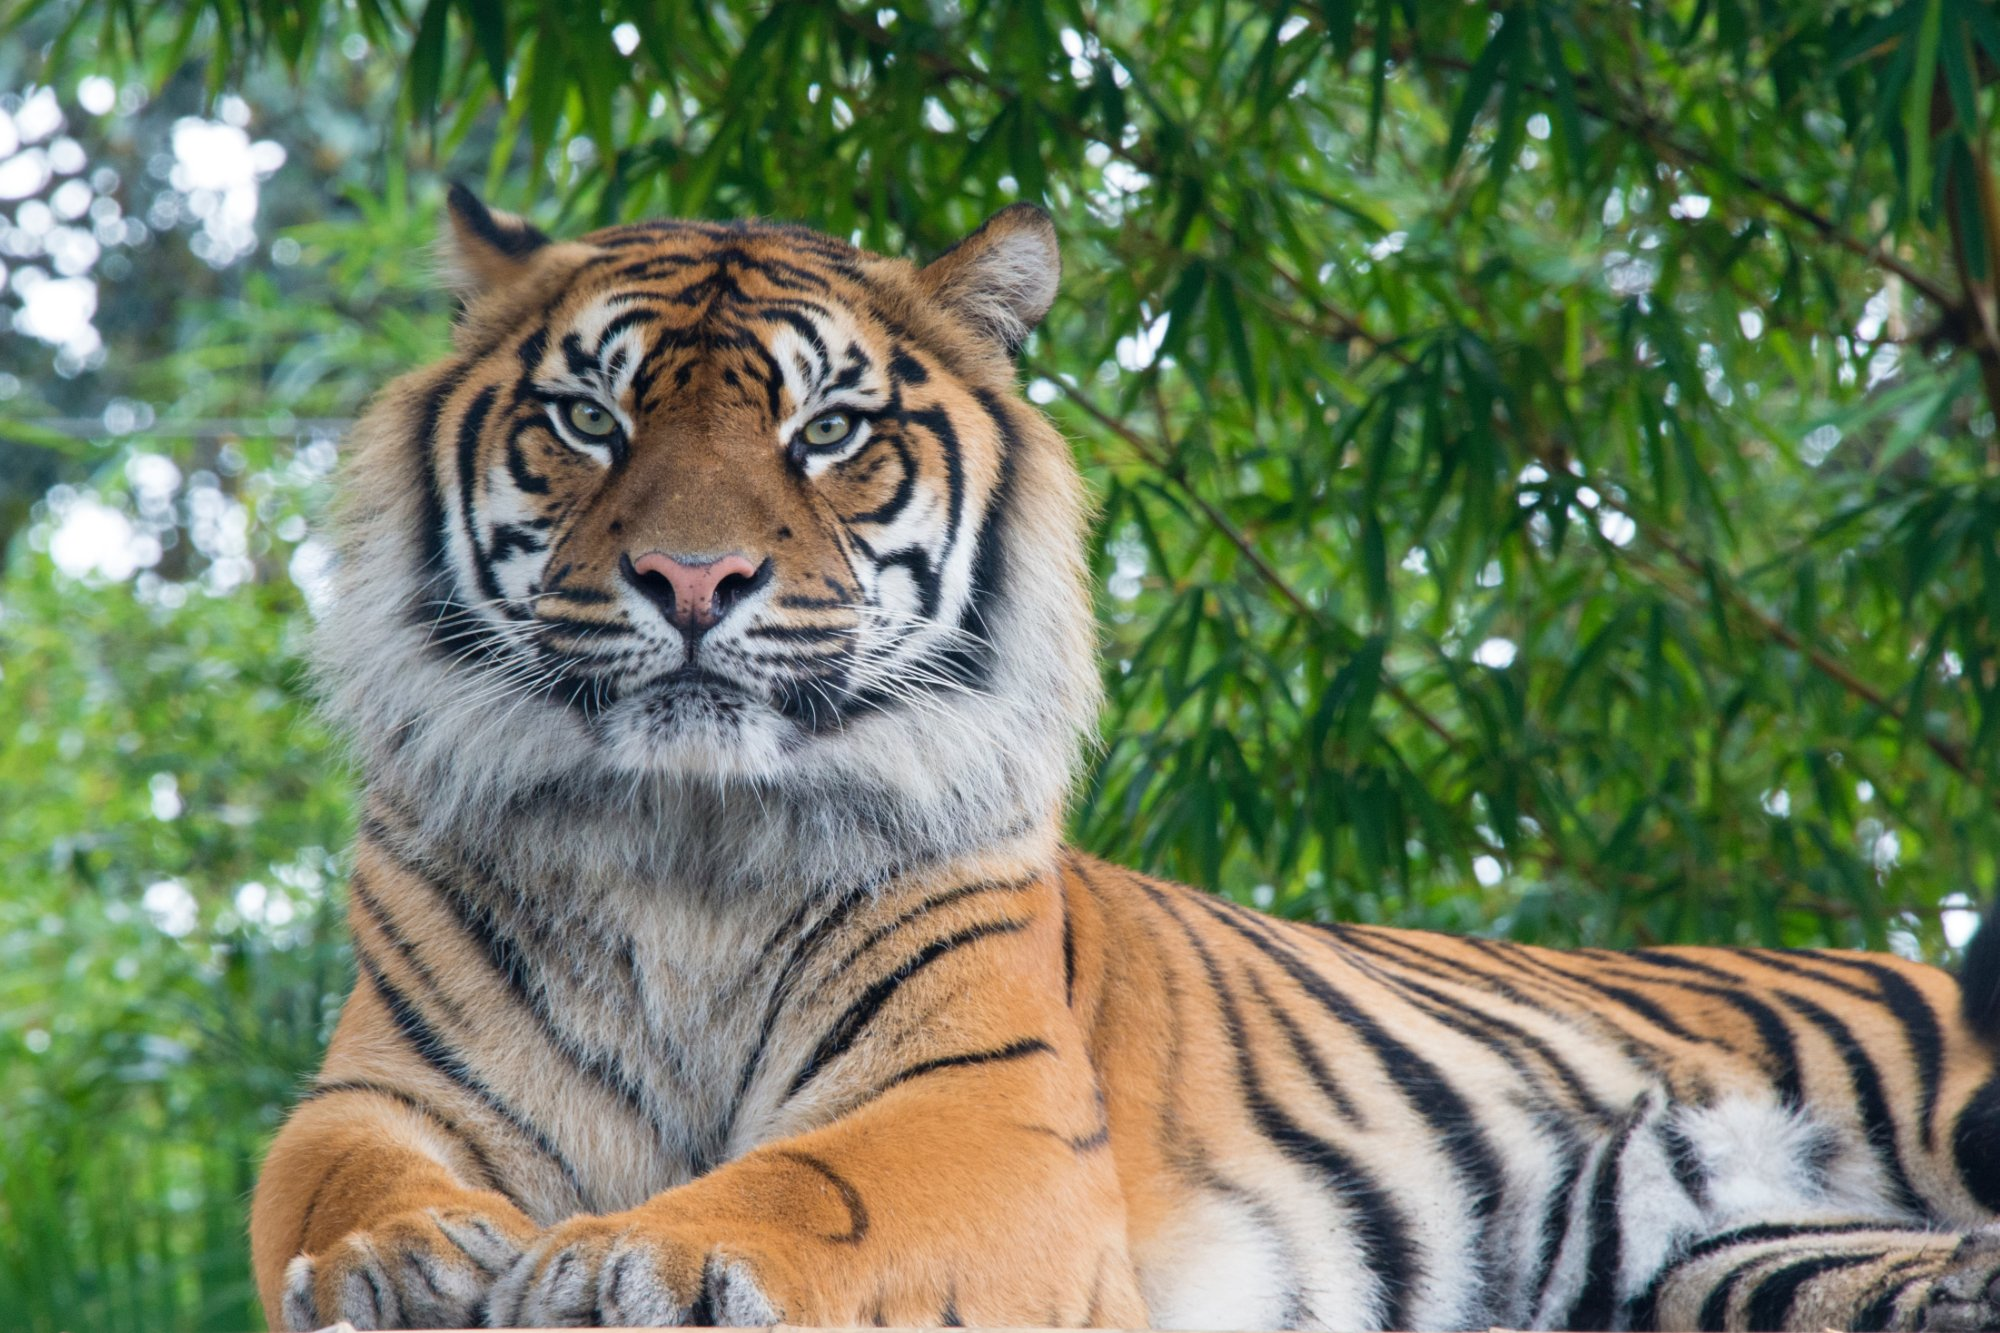 A photo of a tiger signifying dominance.